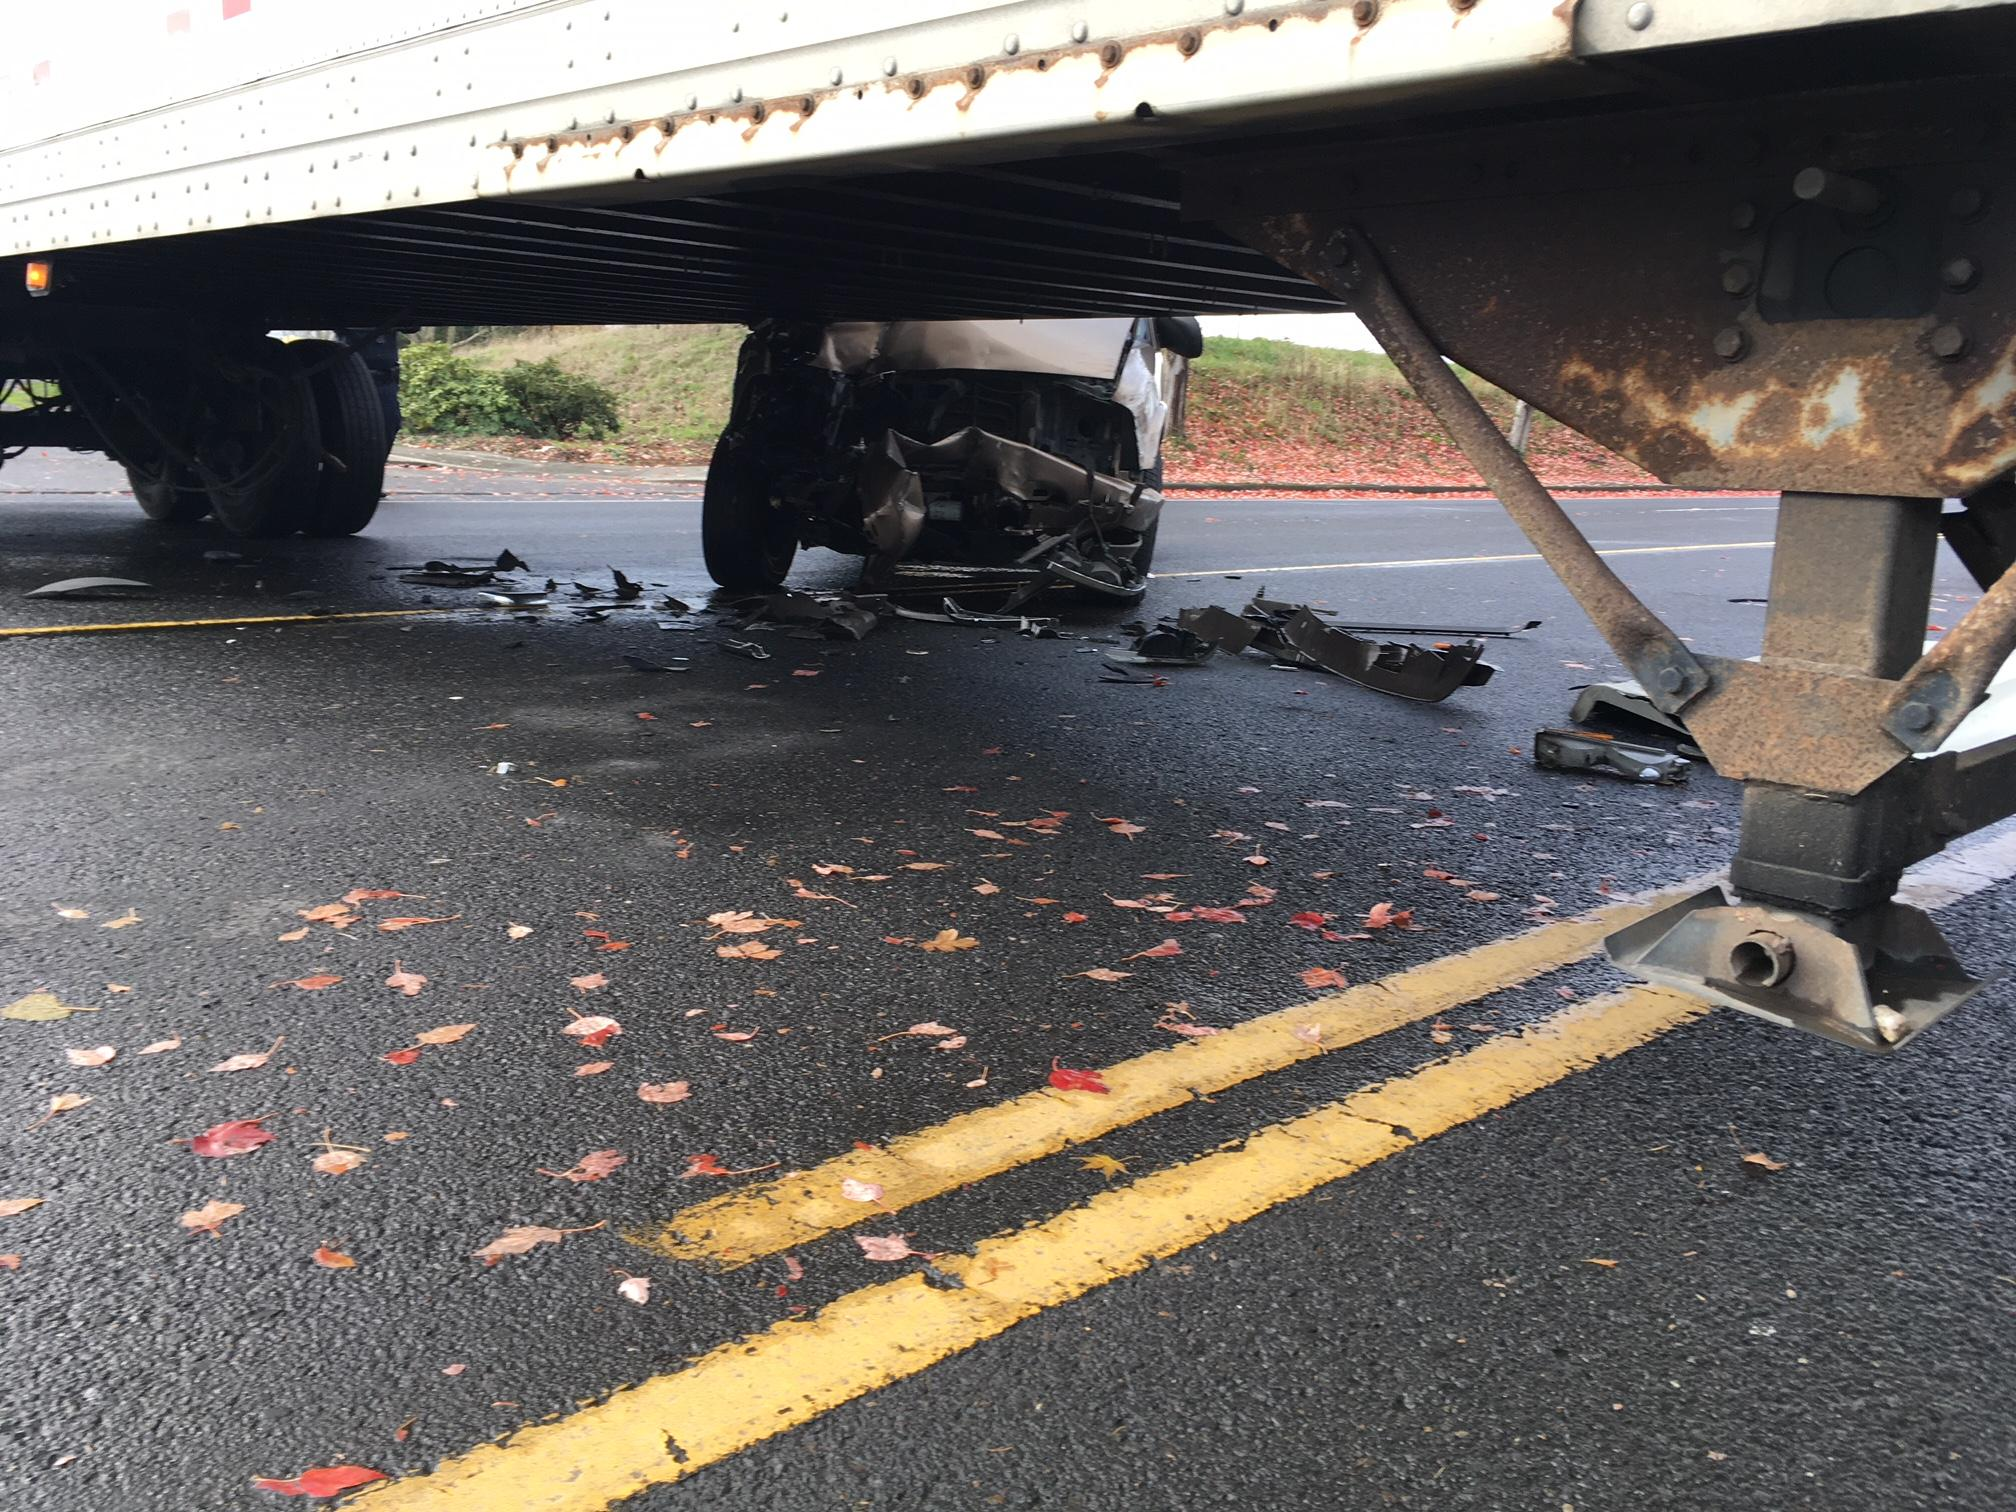 Beaverton police say a driver was seriously injured after a crash involving a semi-truck in Aloha on Nov. 20, 2017. Photo courtesy Beaverton Police Department